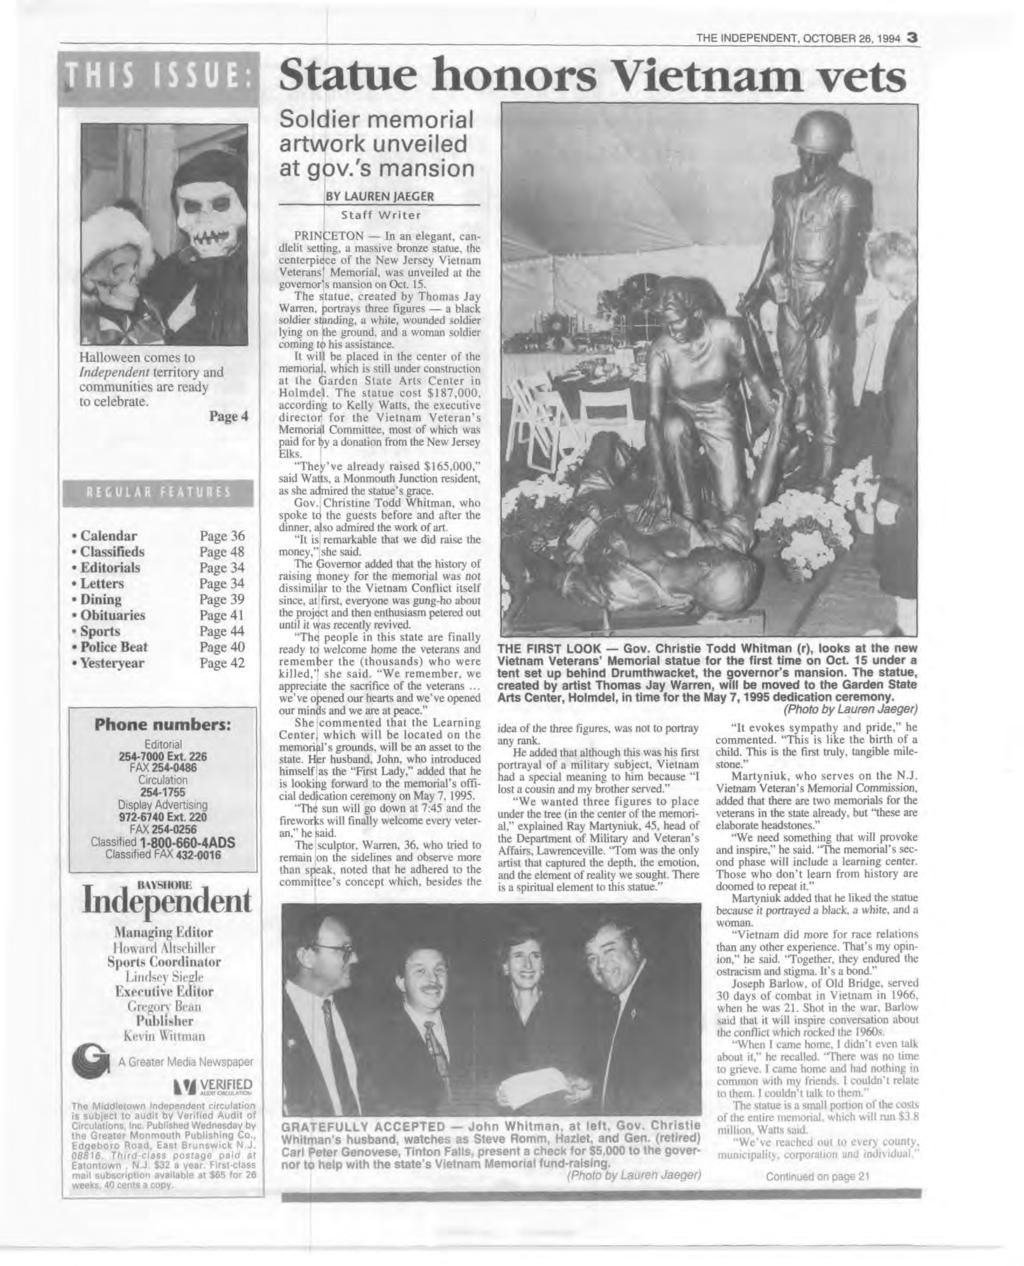 THE NDEPENDENT, OCTOBER 26, 1994 3 Statue honors Vietnam vets S o l d i e r m e m o r i a l a r t w o r k u n v e i l e d a t g o v / s m a n s i o n BY LAUREN JAEGER S ta ff W r ite r Halloween